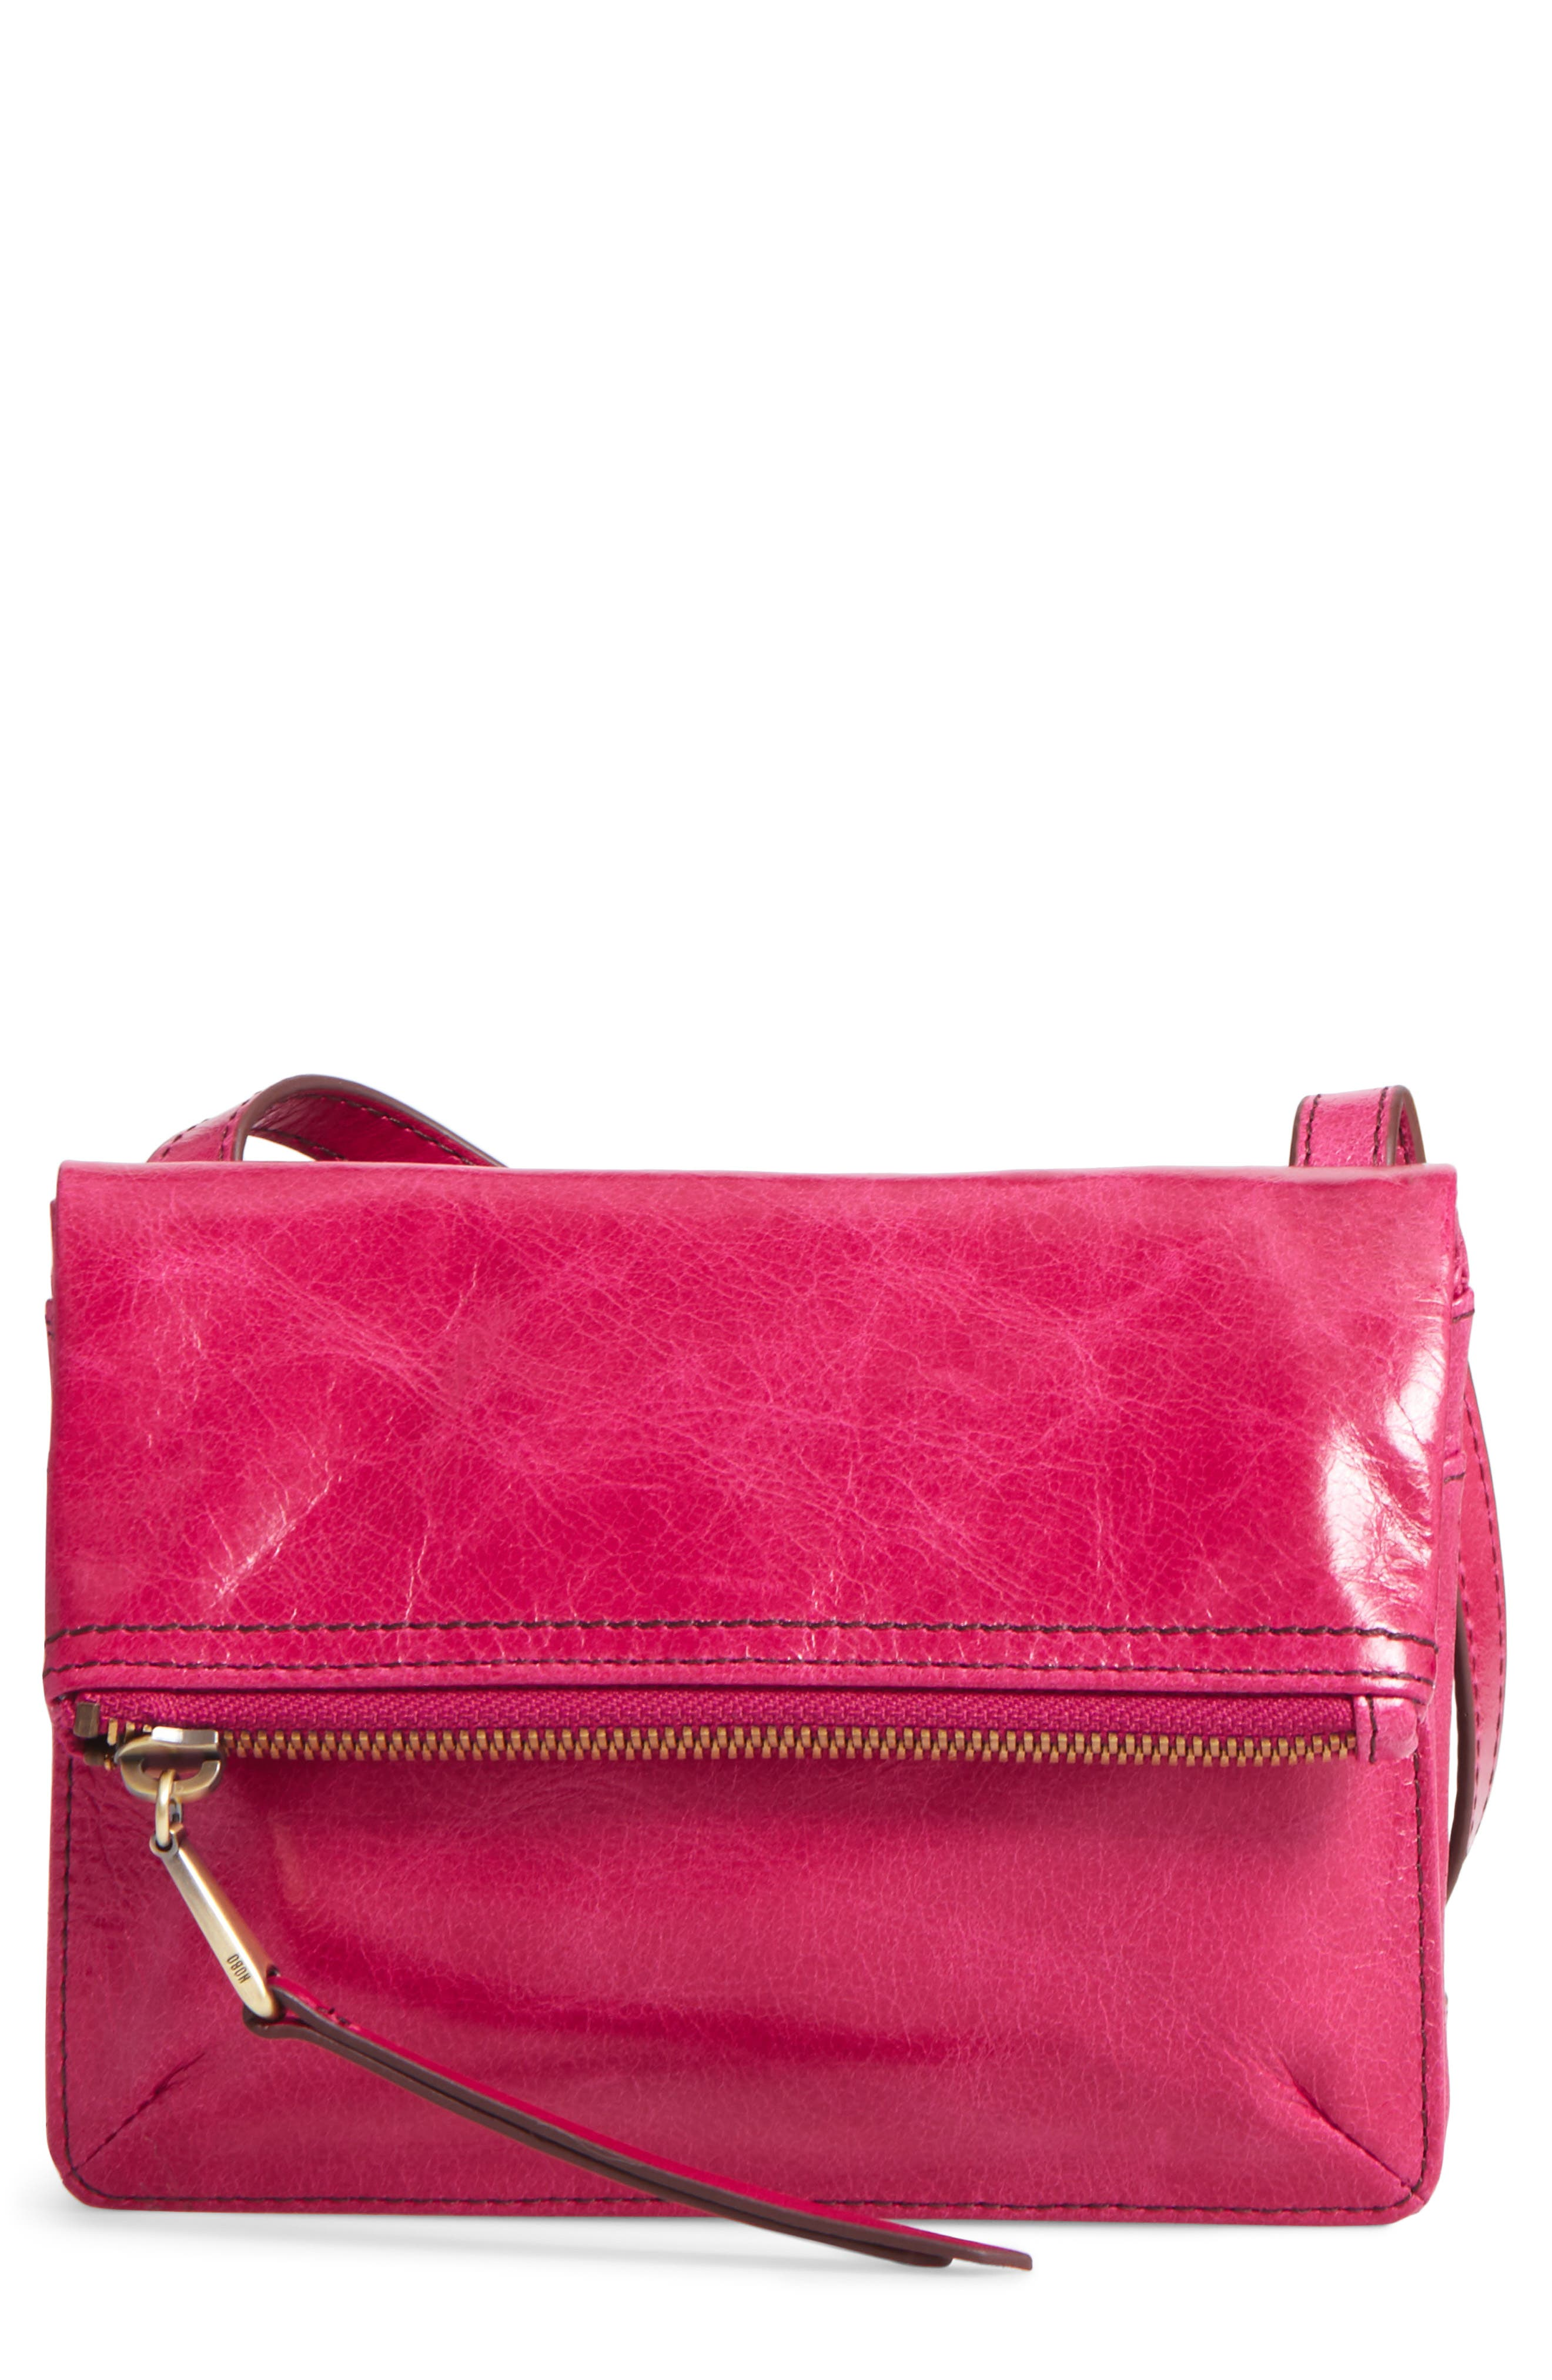 Hobo Glade Leather Crossbody Bag